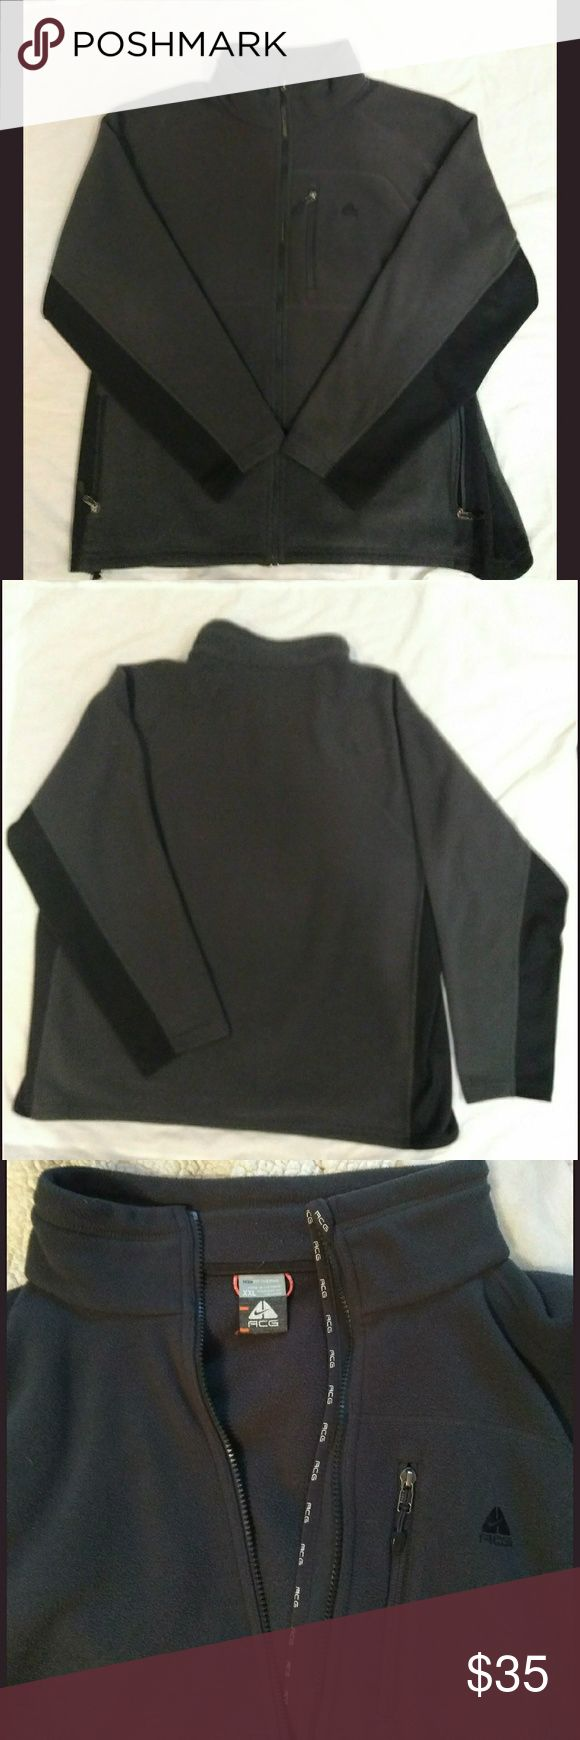 XXL Nike ACG jacket Dark gray and black full zip Nike Jacket, in excellent condition! Nike ACG Jackets & Coats Performance Jackets